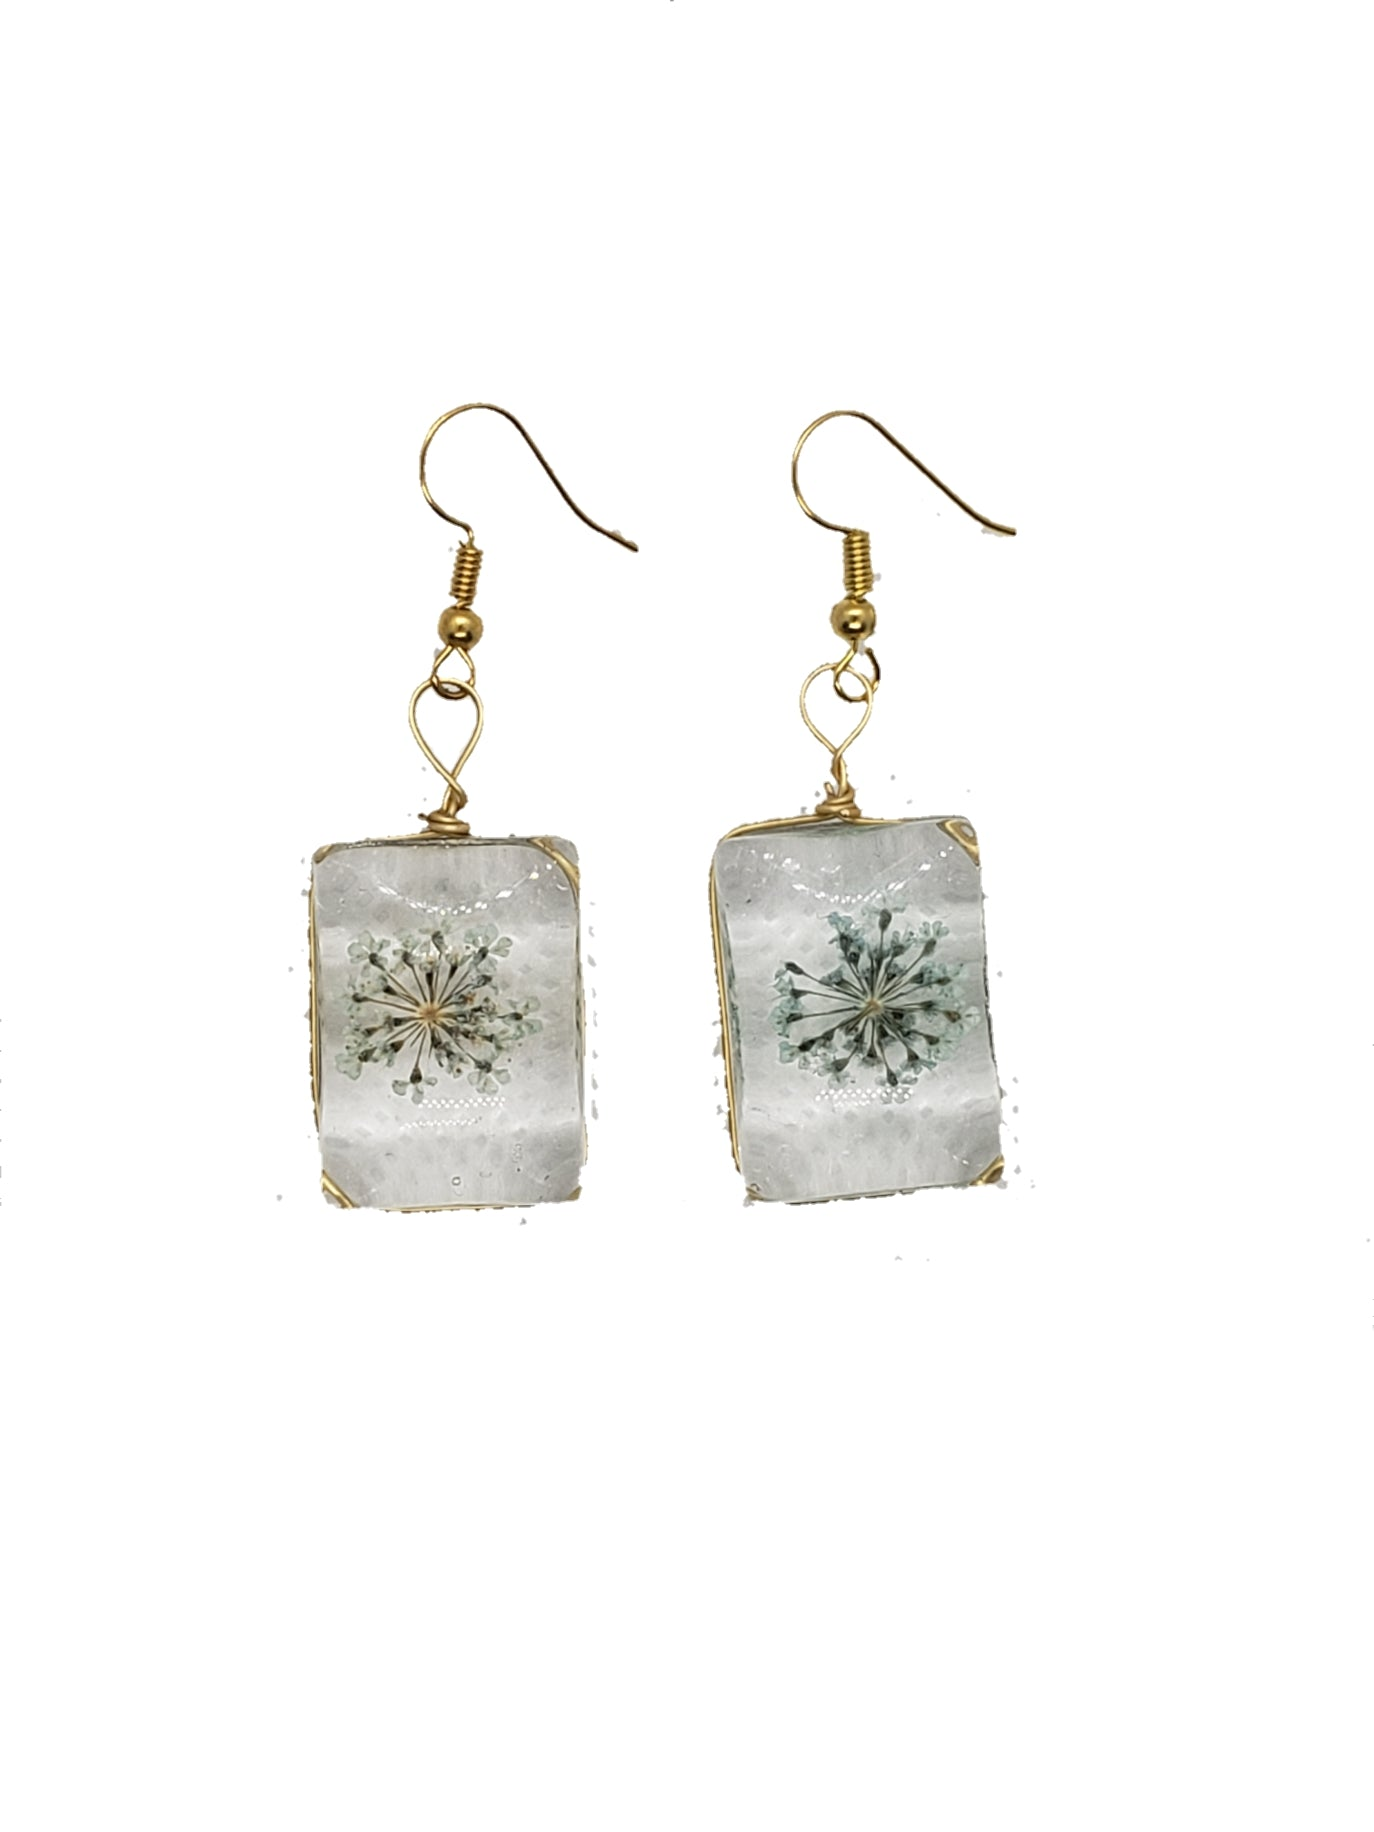 Glass stone earrings - The Bauble Shop